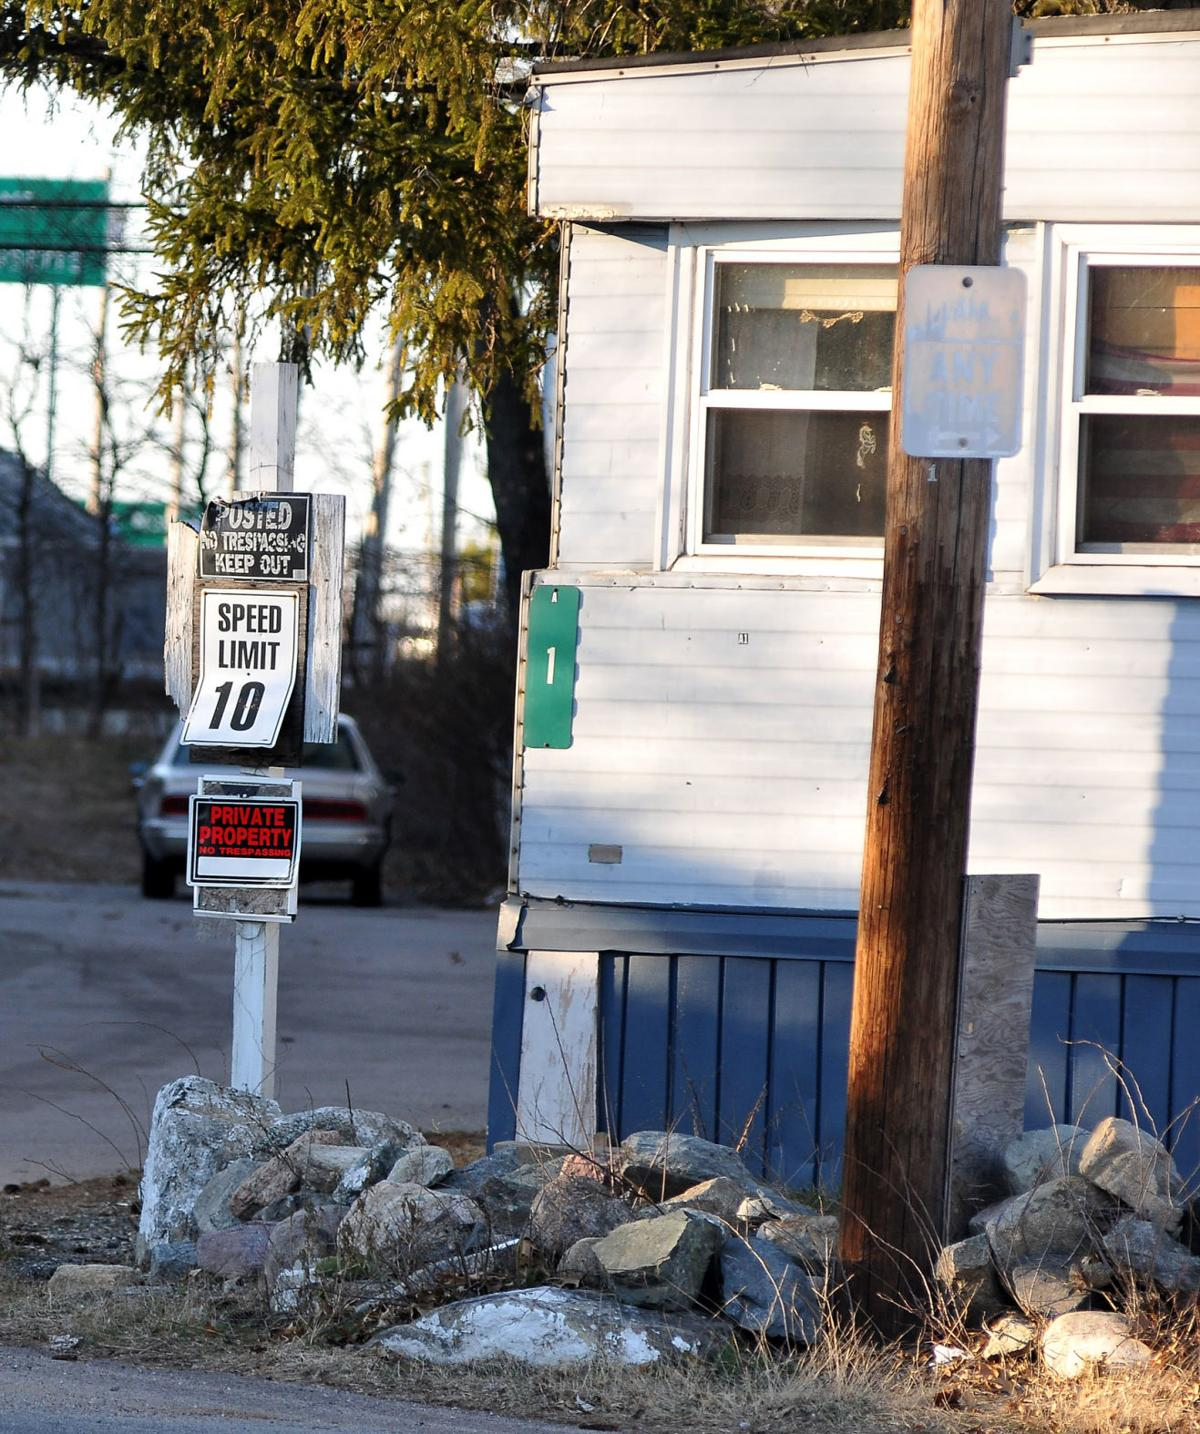 South Attleboro mobile home park gets water service reprieve   Local on mobile homes with garages, tiny house on wheels park, mobile games, clear lake park, rv park, party in the park, mobile homes history, mobile homes in arkansas, feather river oroville ca park, mobile az, port aventura spain theme park, create your own theme park, mobile homes clearwater fl, midland texas water park, industrial park, business park, world trade park, mobile media browser, sacramento water park,